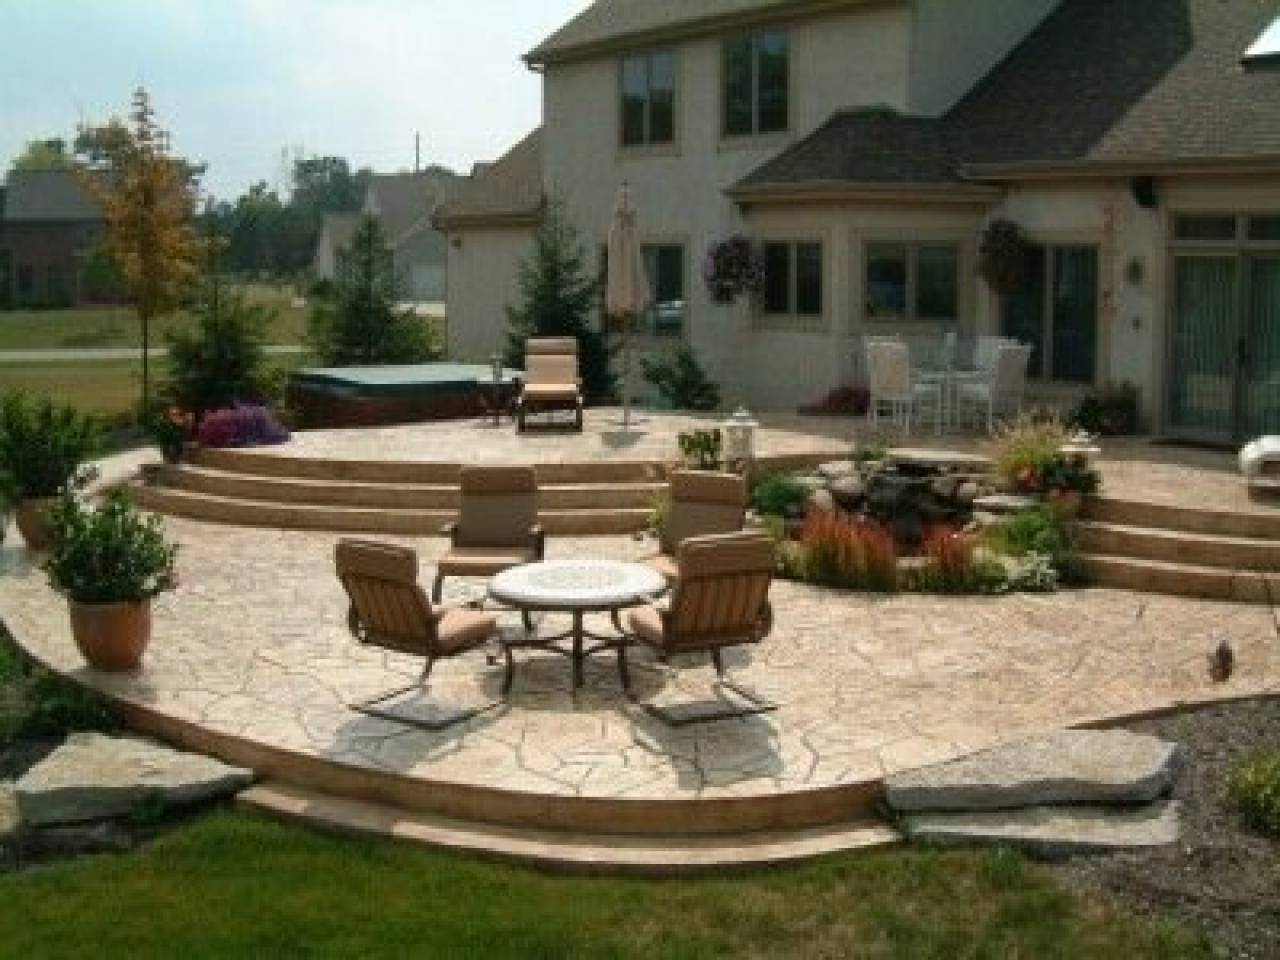 Tiered Patio Designs Stamped Concrete - House Plans | #173461 on Tiered Patio Ideas id=13131